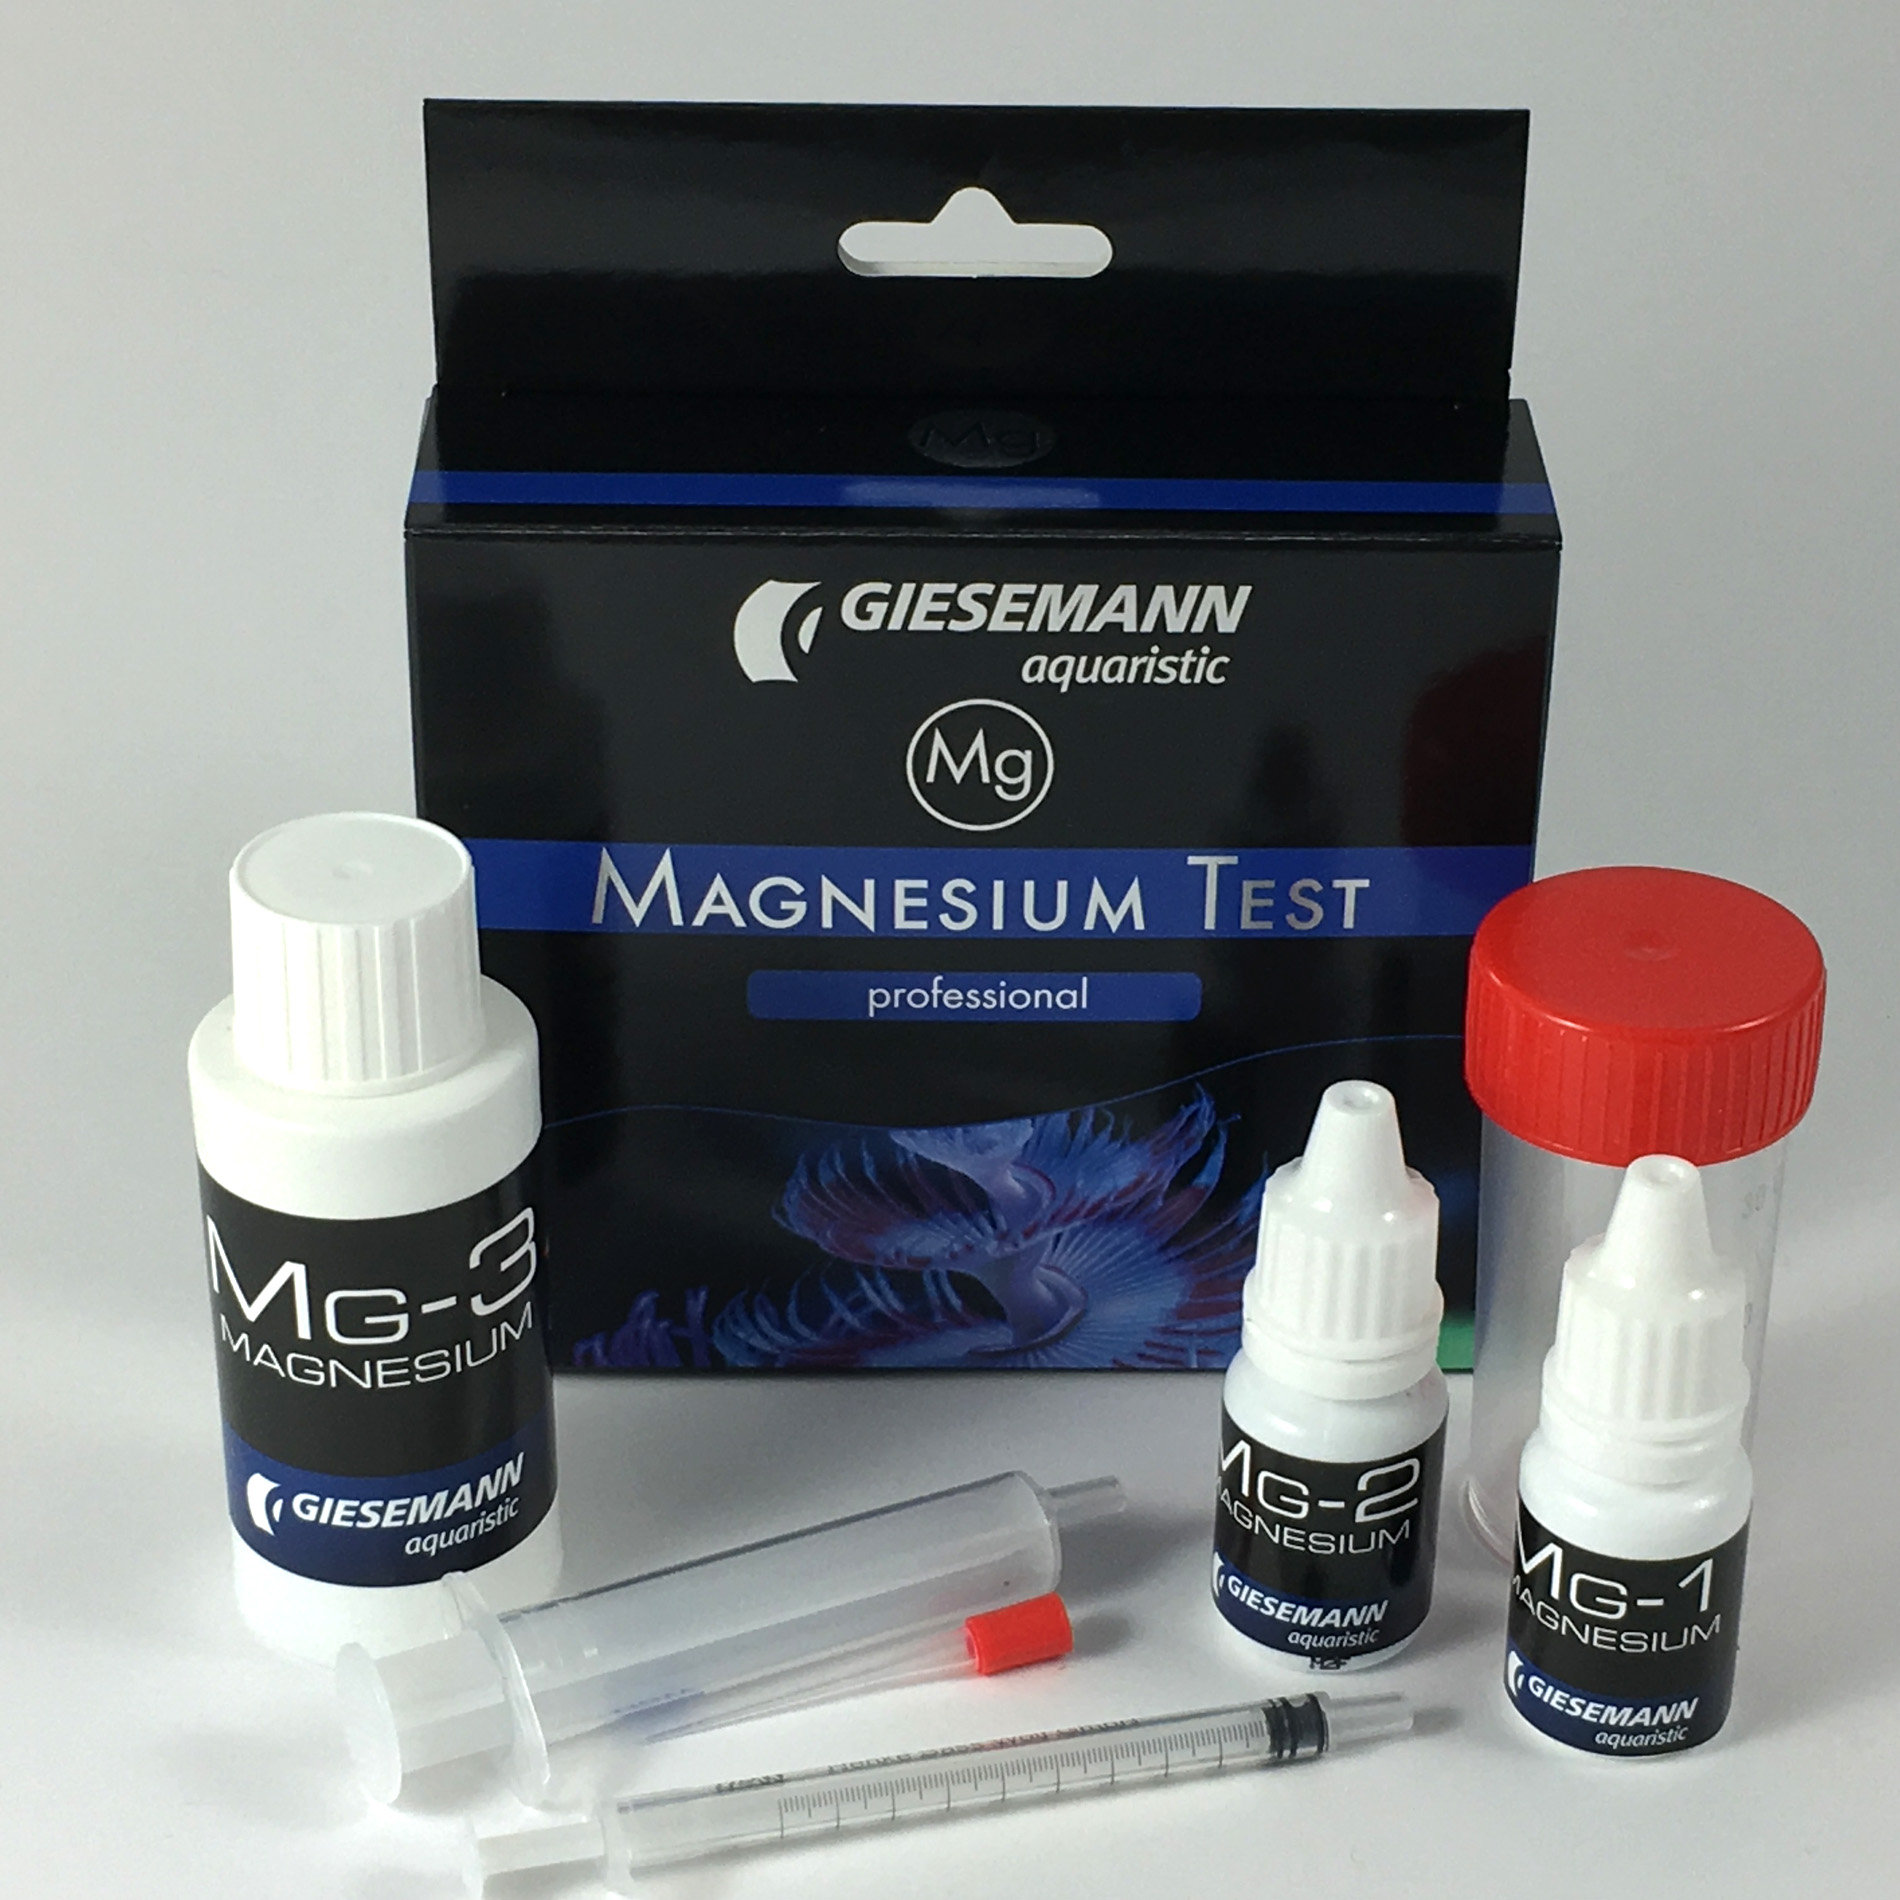 GIESEMANN professional MAGNESIUM test (Mg)